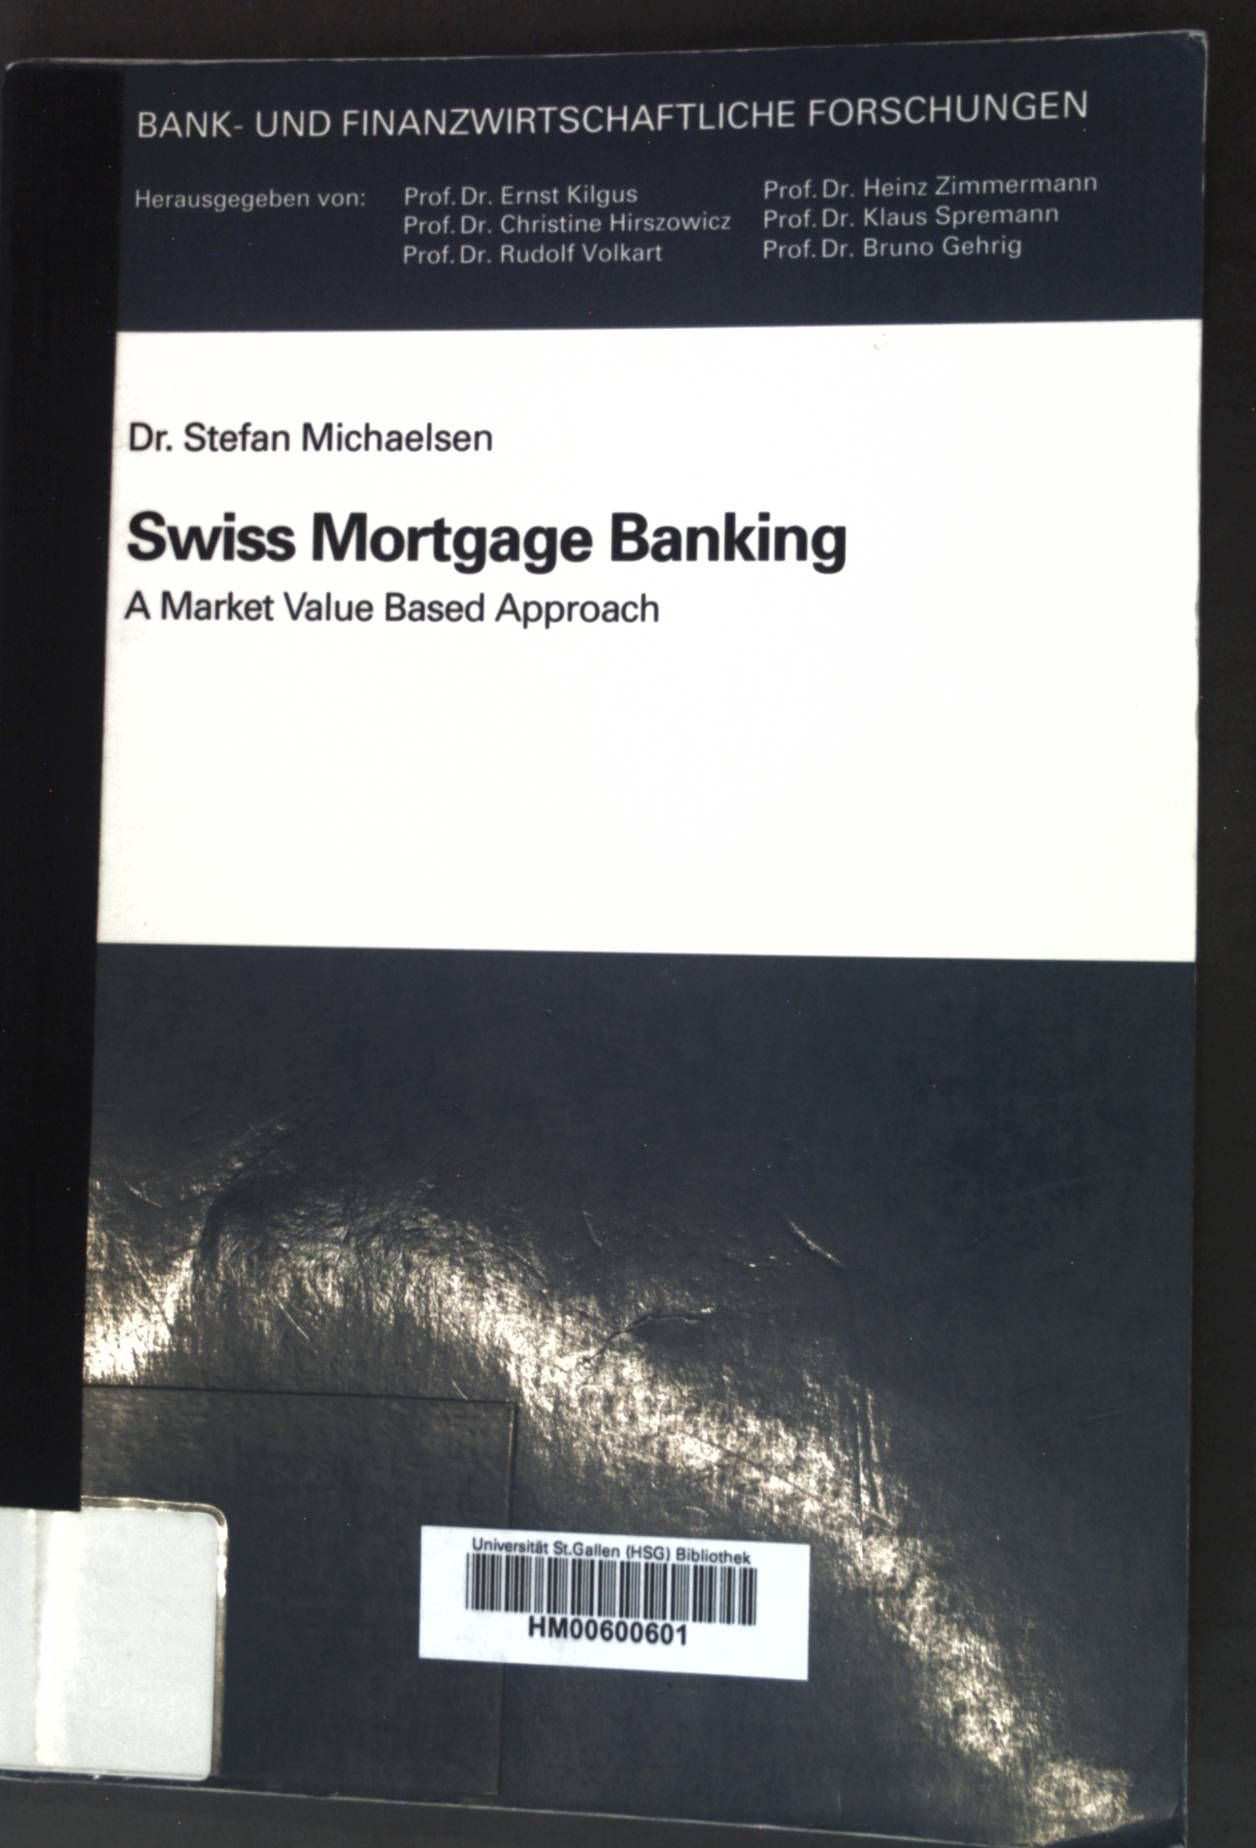 Swiss Mortgage Banking.